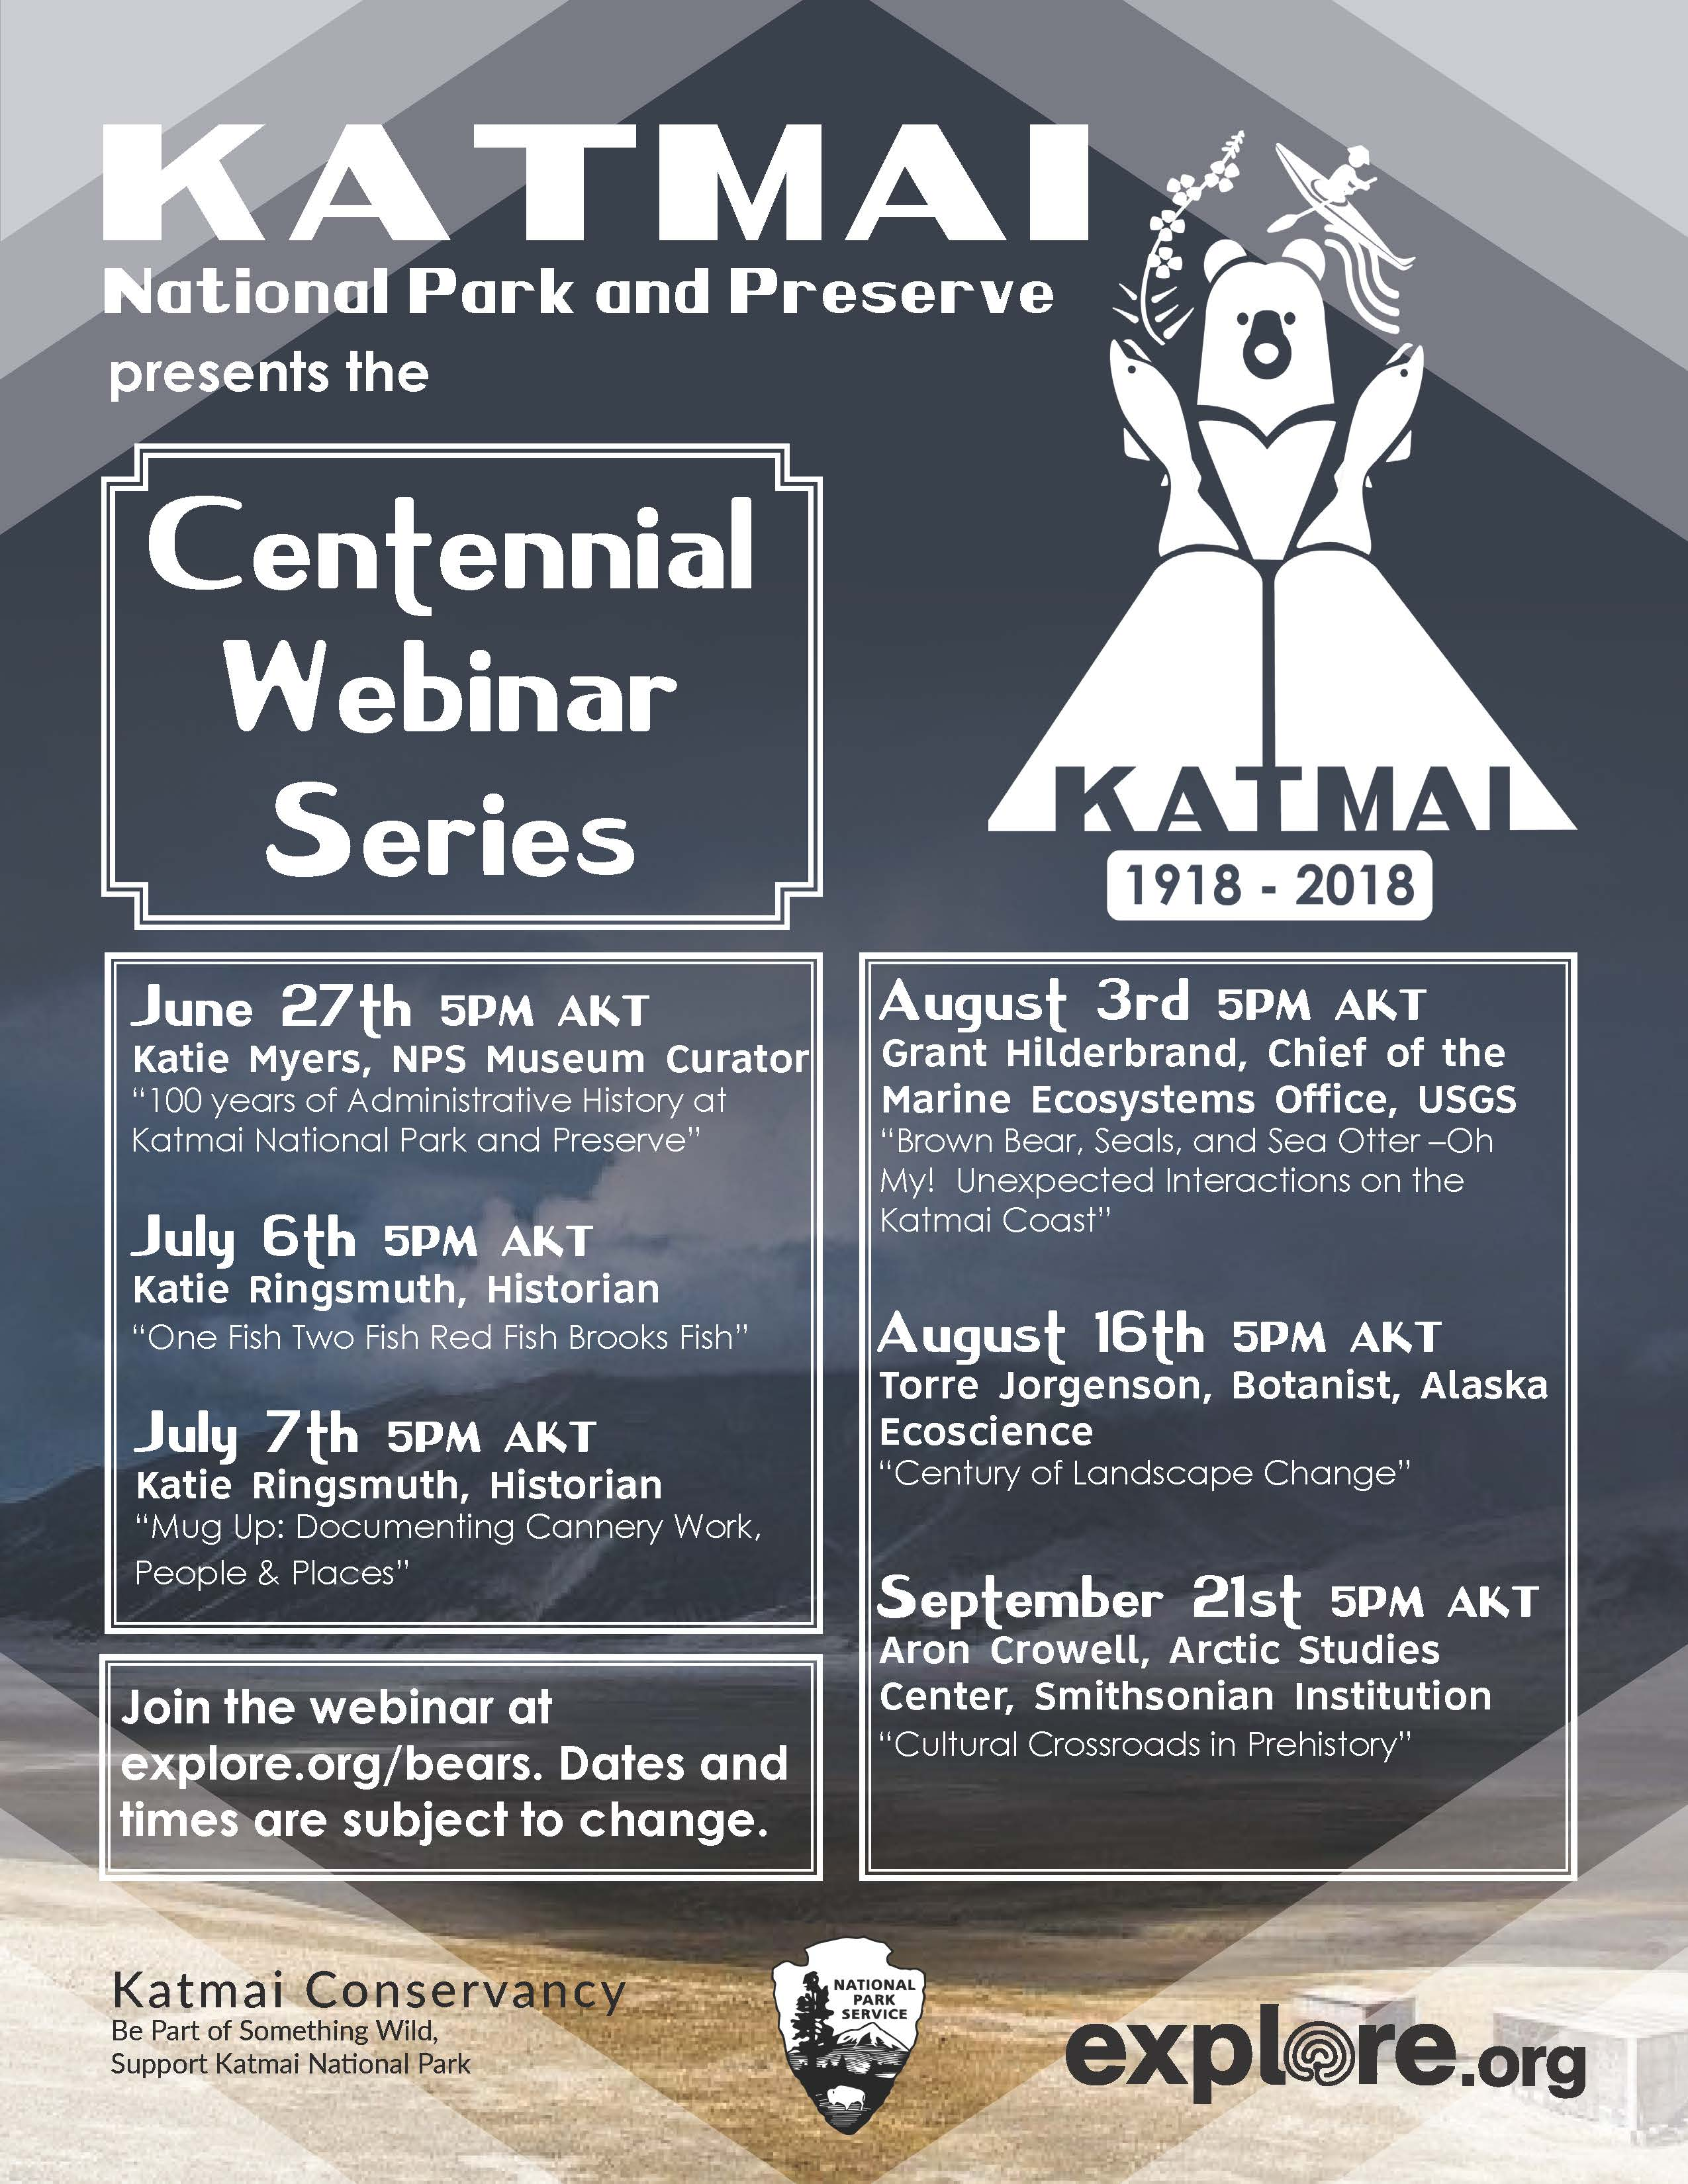 Graphic listing dates of centennial webinars